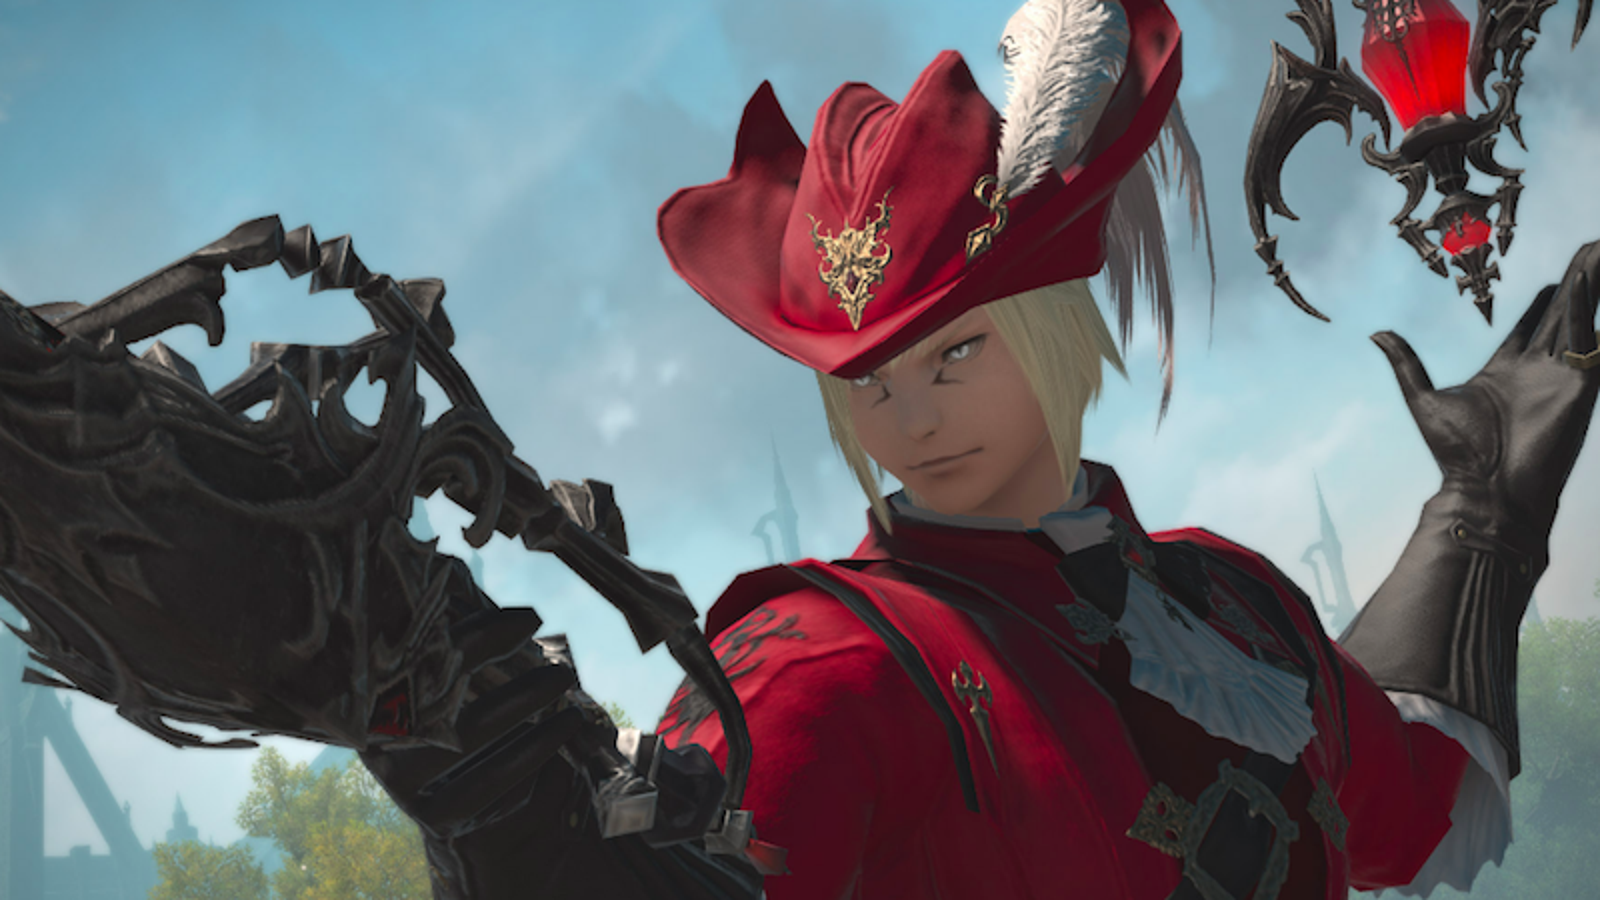 Final Fantasy XIV's Director Talks Housing Shortage, PS4 Cross-Play, And Much More